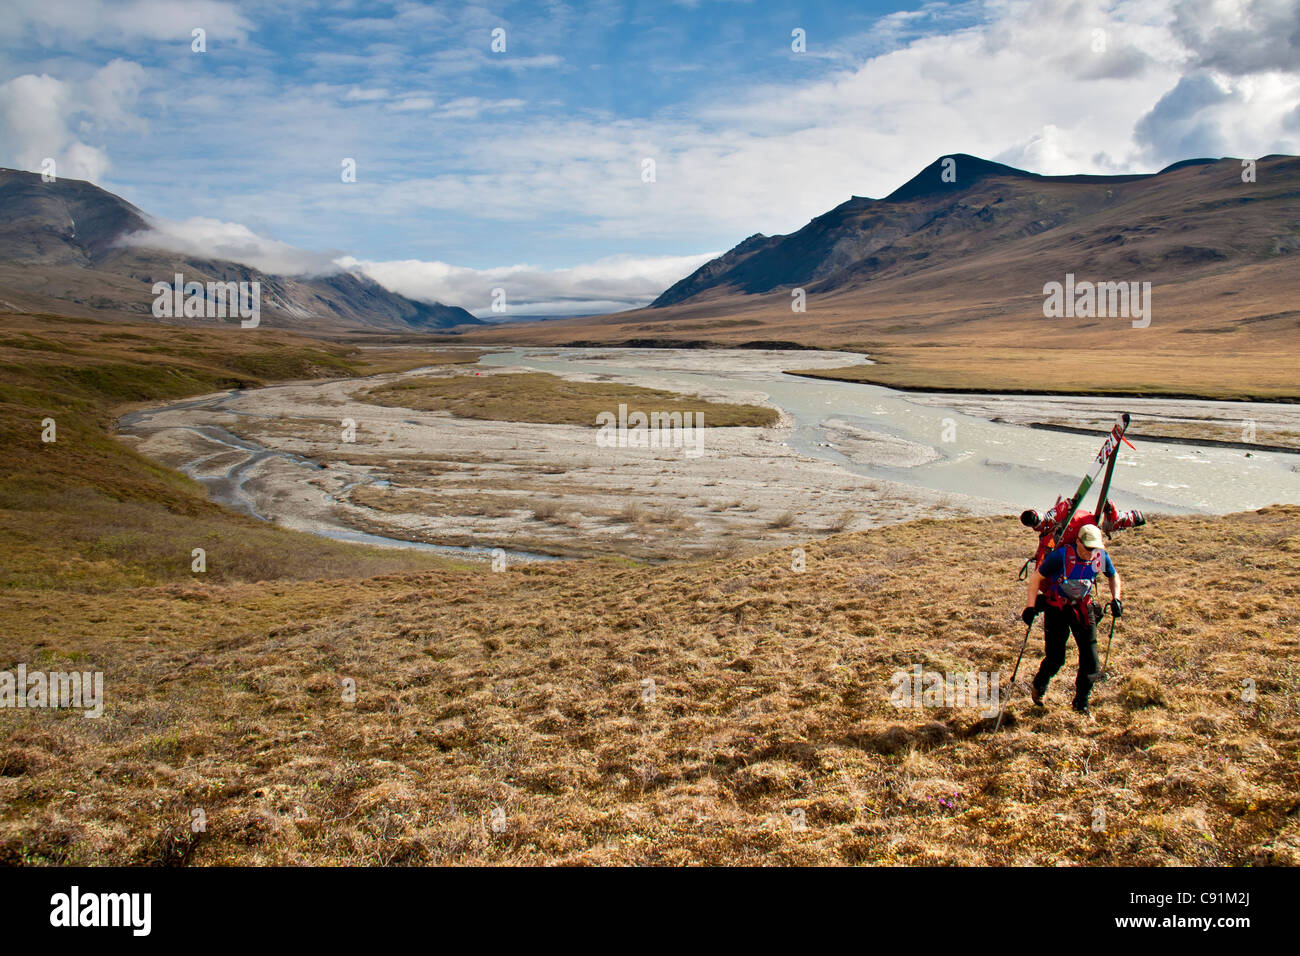 Backpacker carrying skis above the Hulahula River on the approach to Mount Chamberlin, Brooks Range, ANWR, Arctic - Stock Image